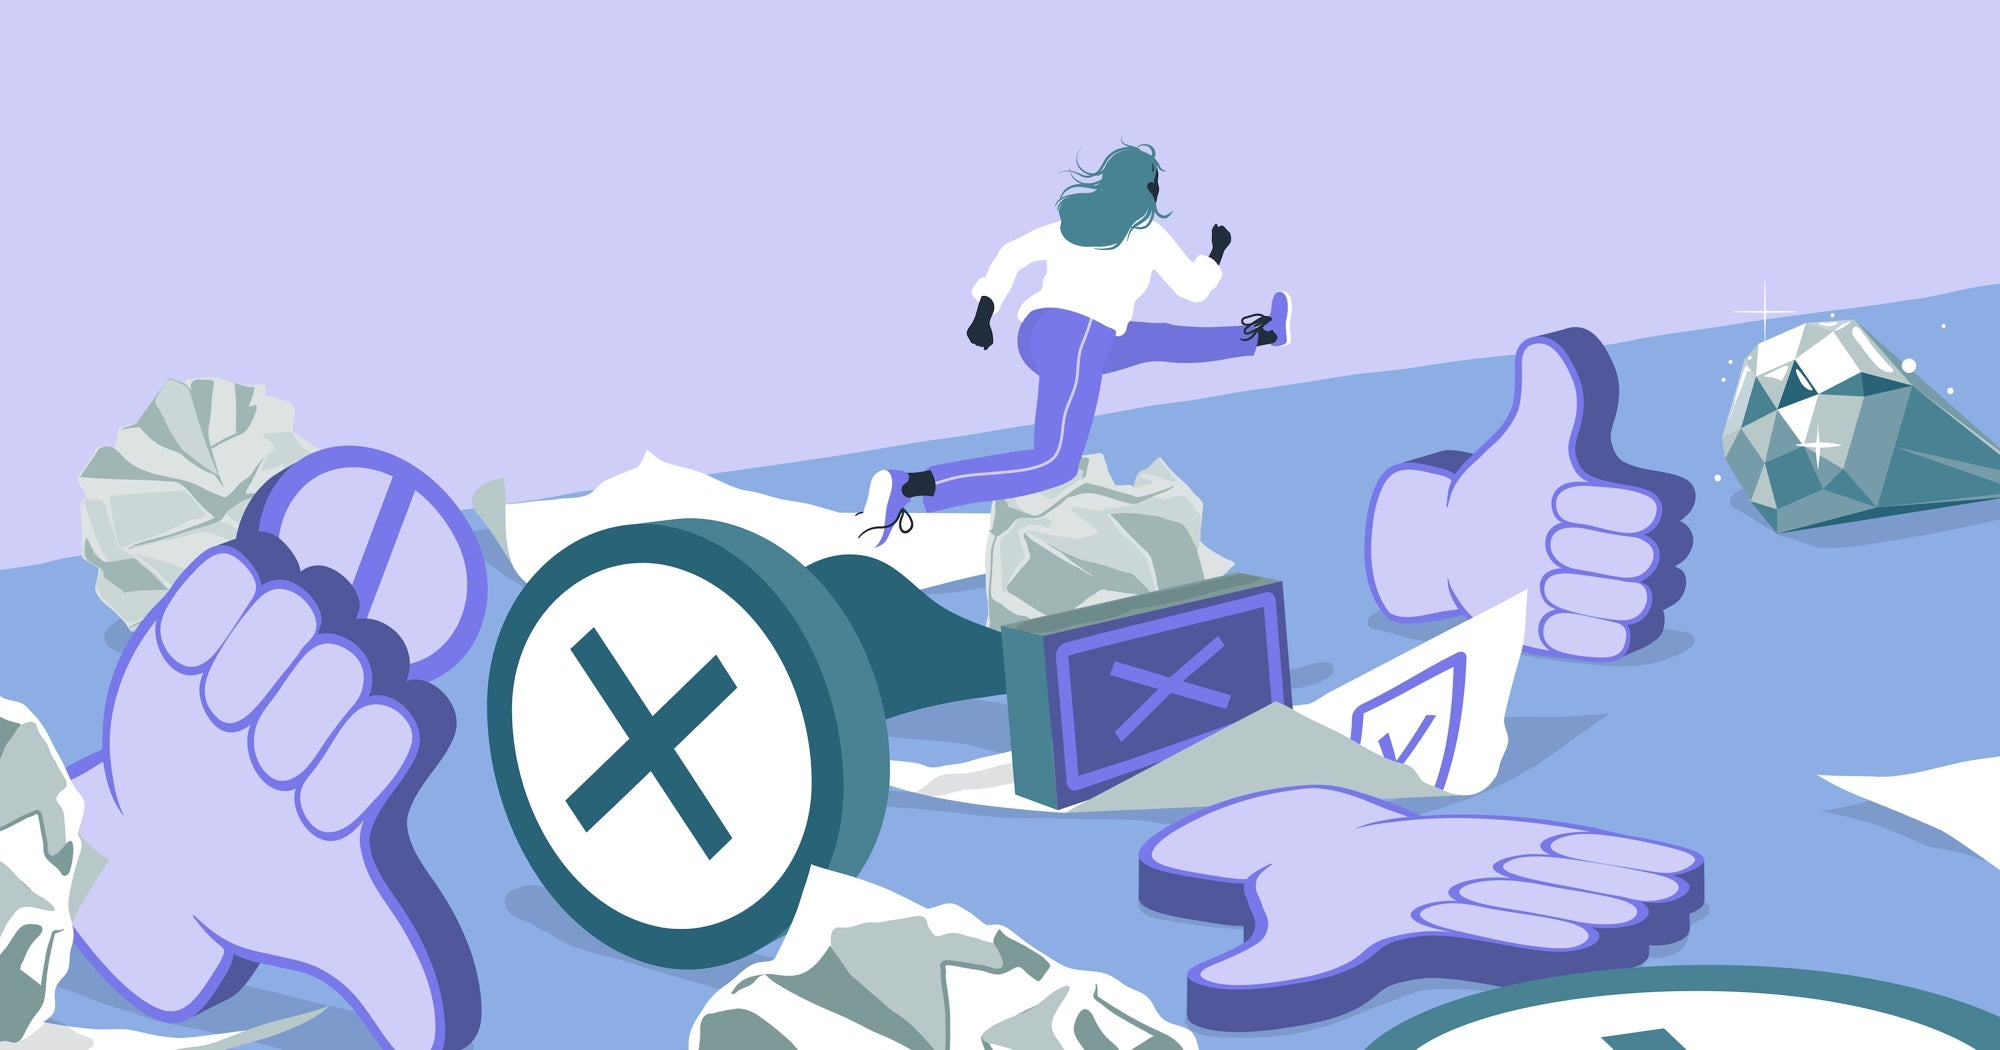 Illustration of a character jumping over symbols that represent rejection and heading for a large gem at the end of the course